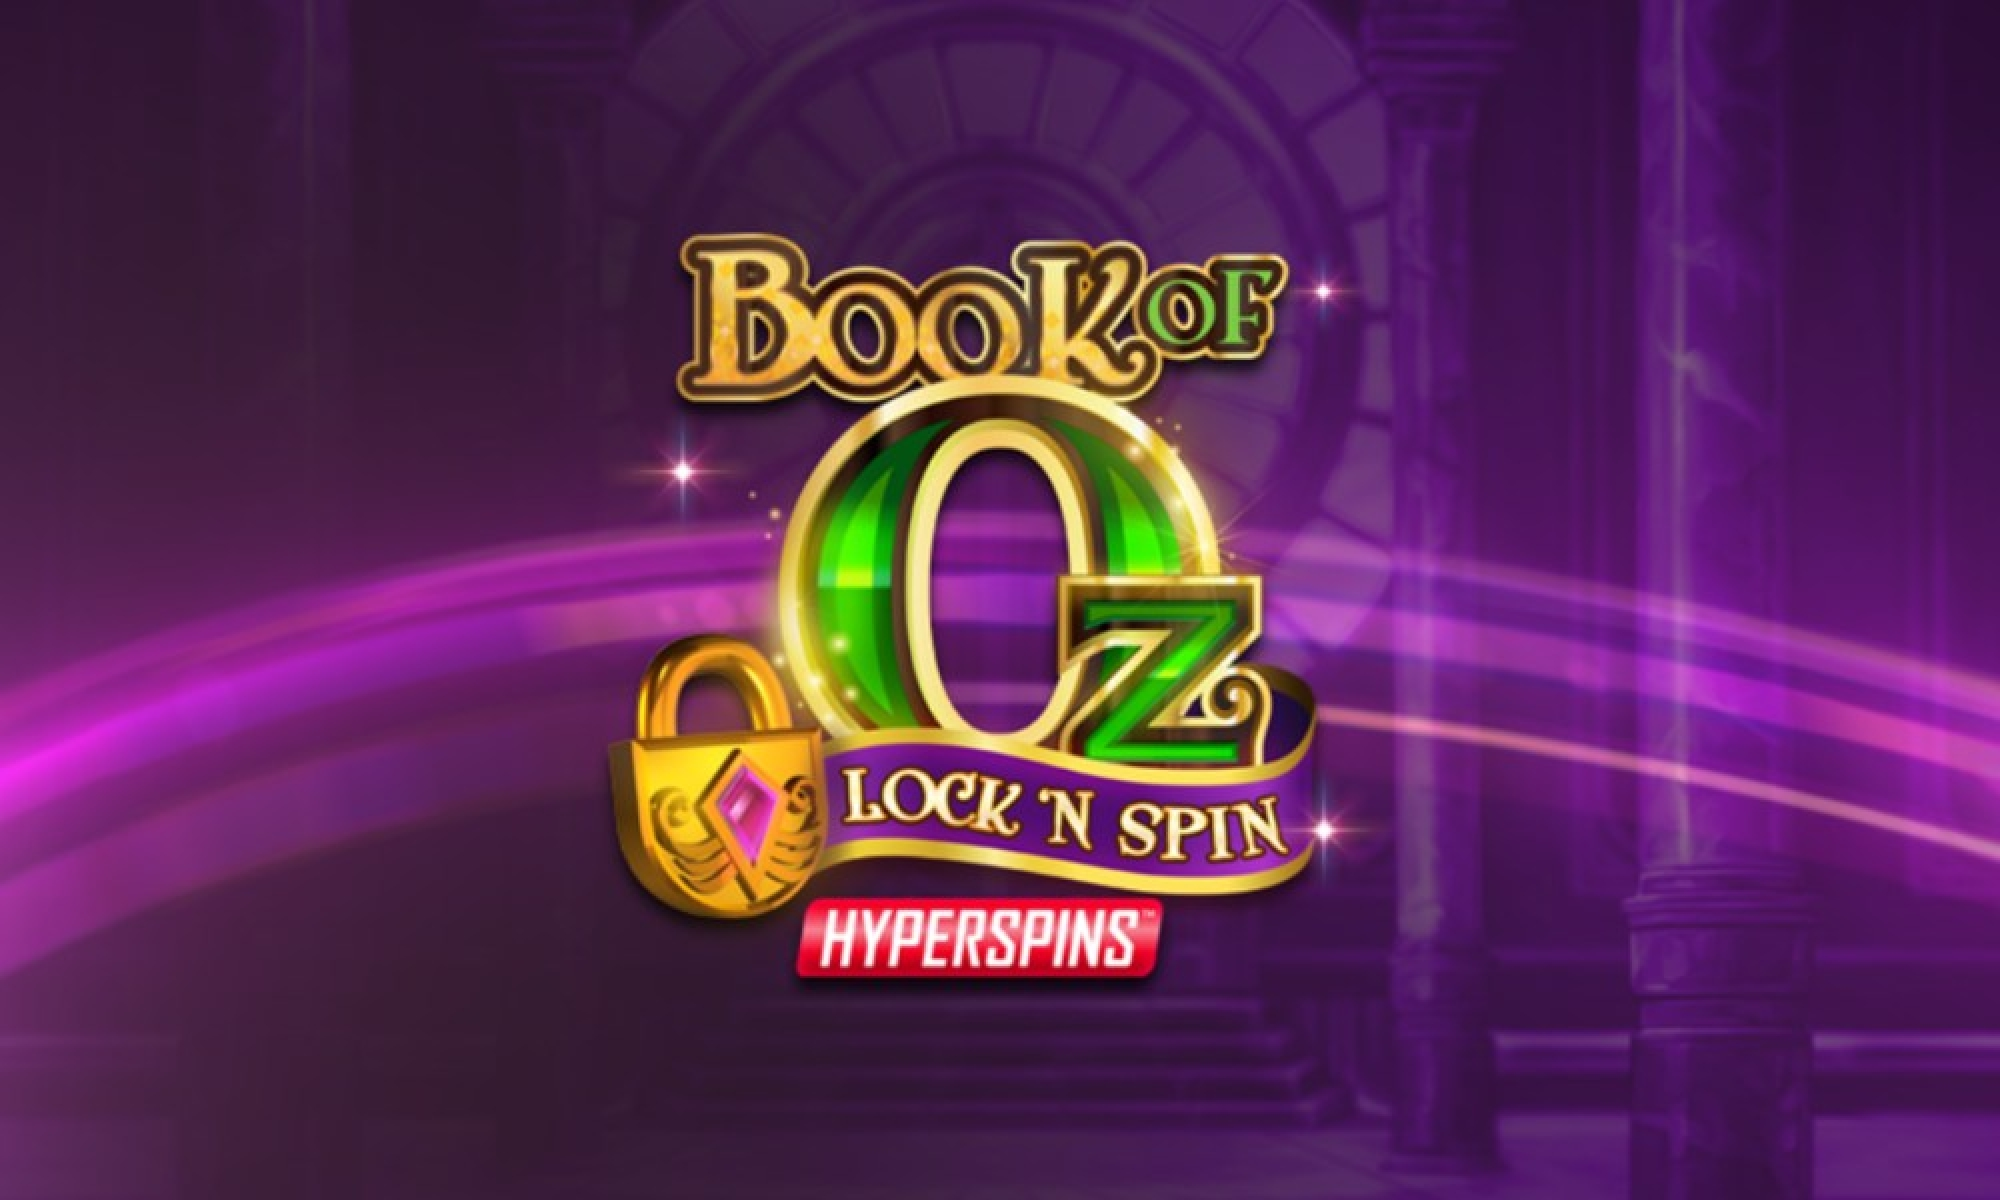 The Book of Oz Lock 'N Spin Online Slot Demo Game by Triple Edge Studios